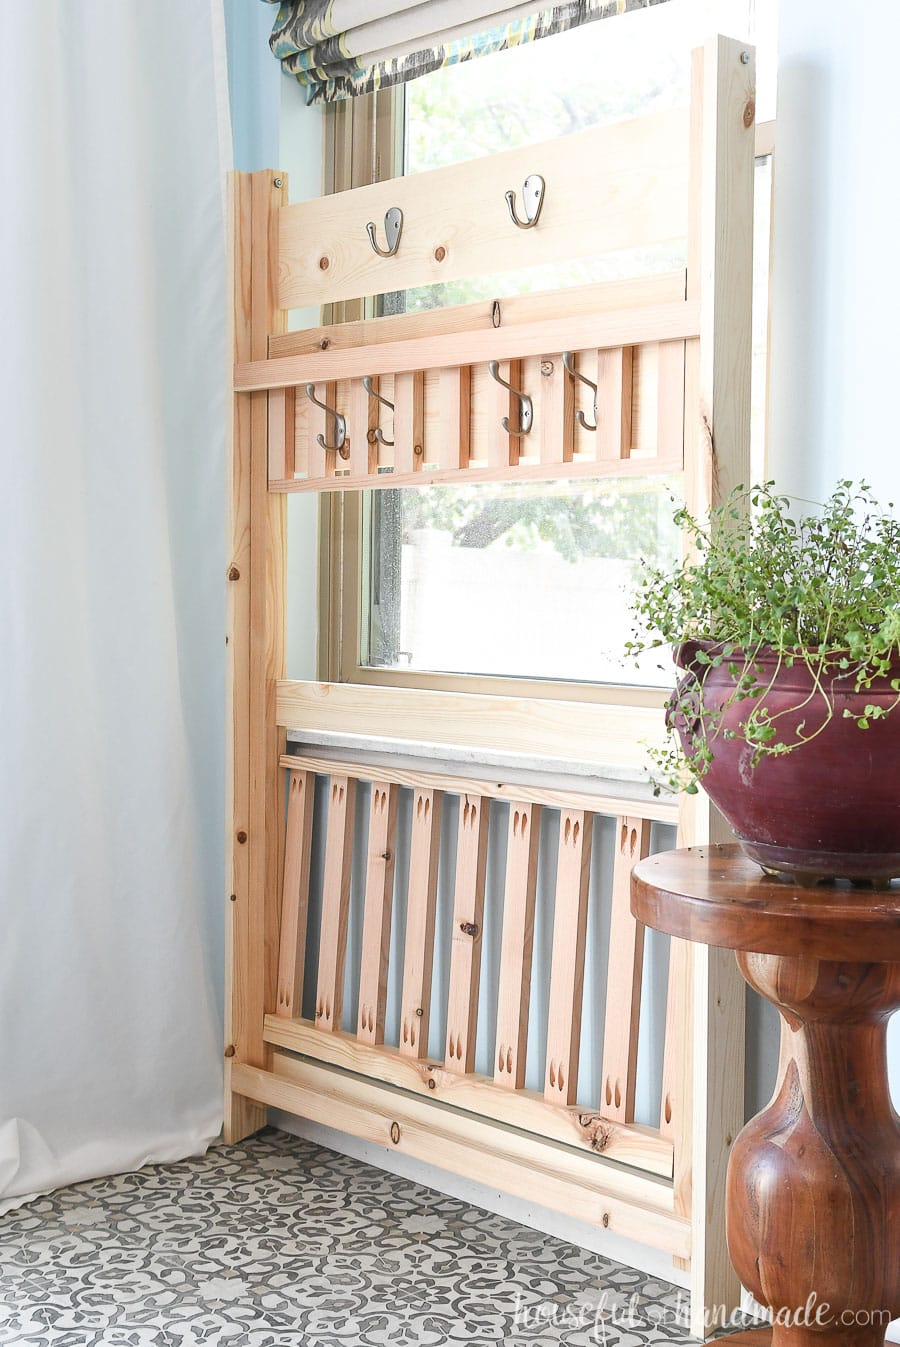 The collapsible mudroom storage shelves folded up flat for storage.